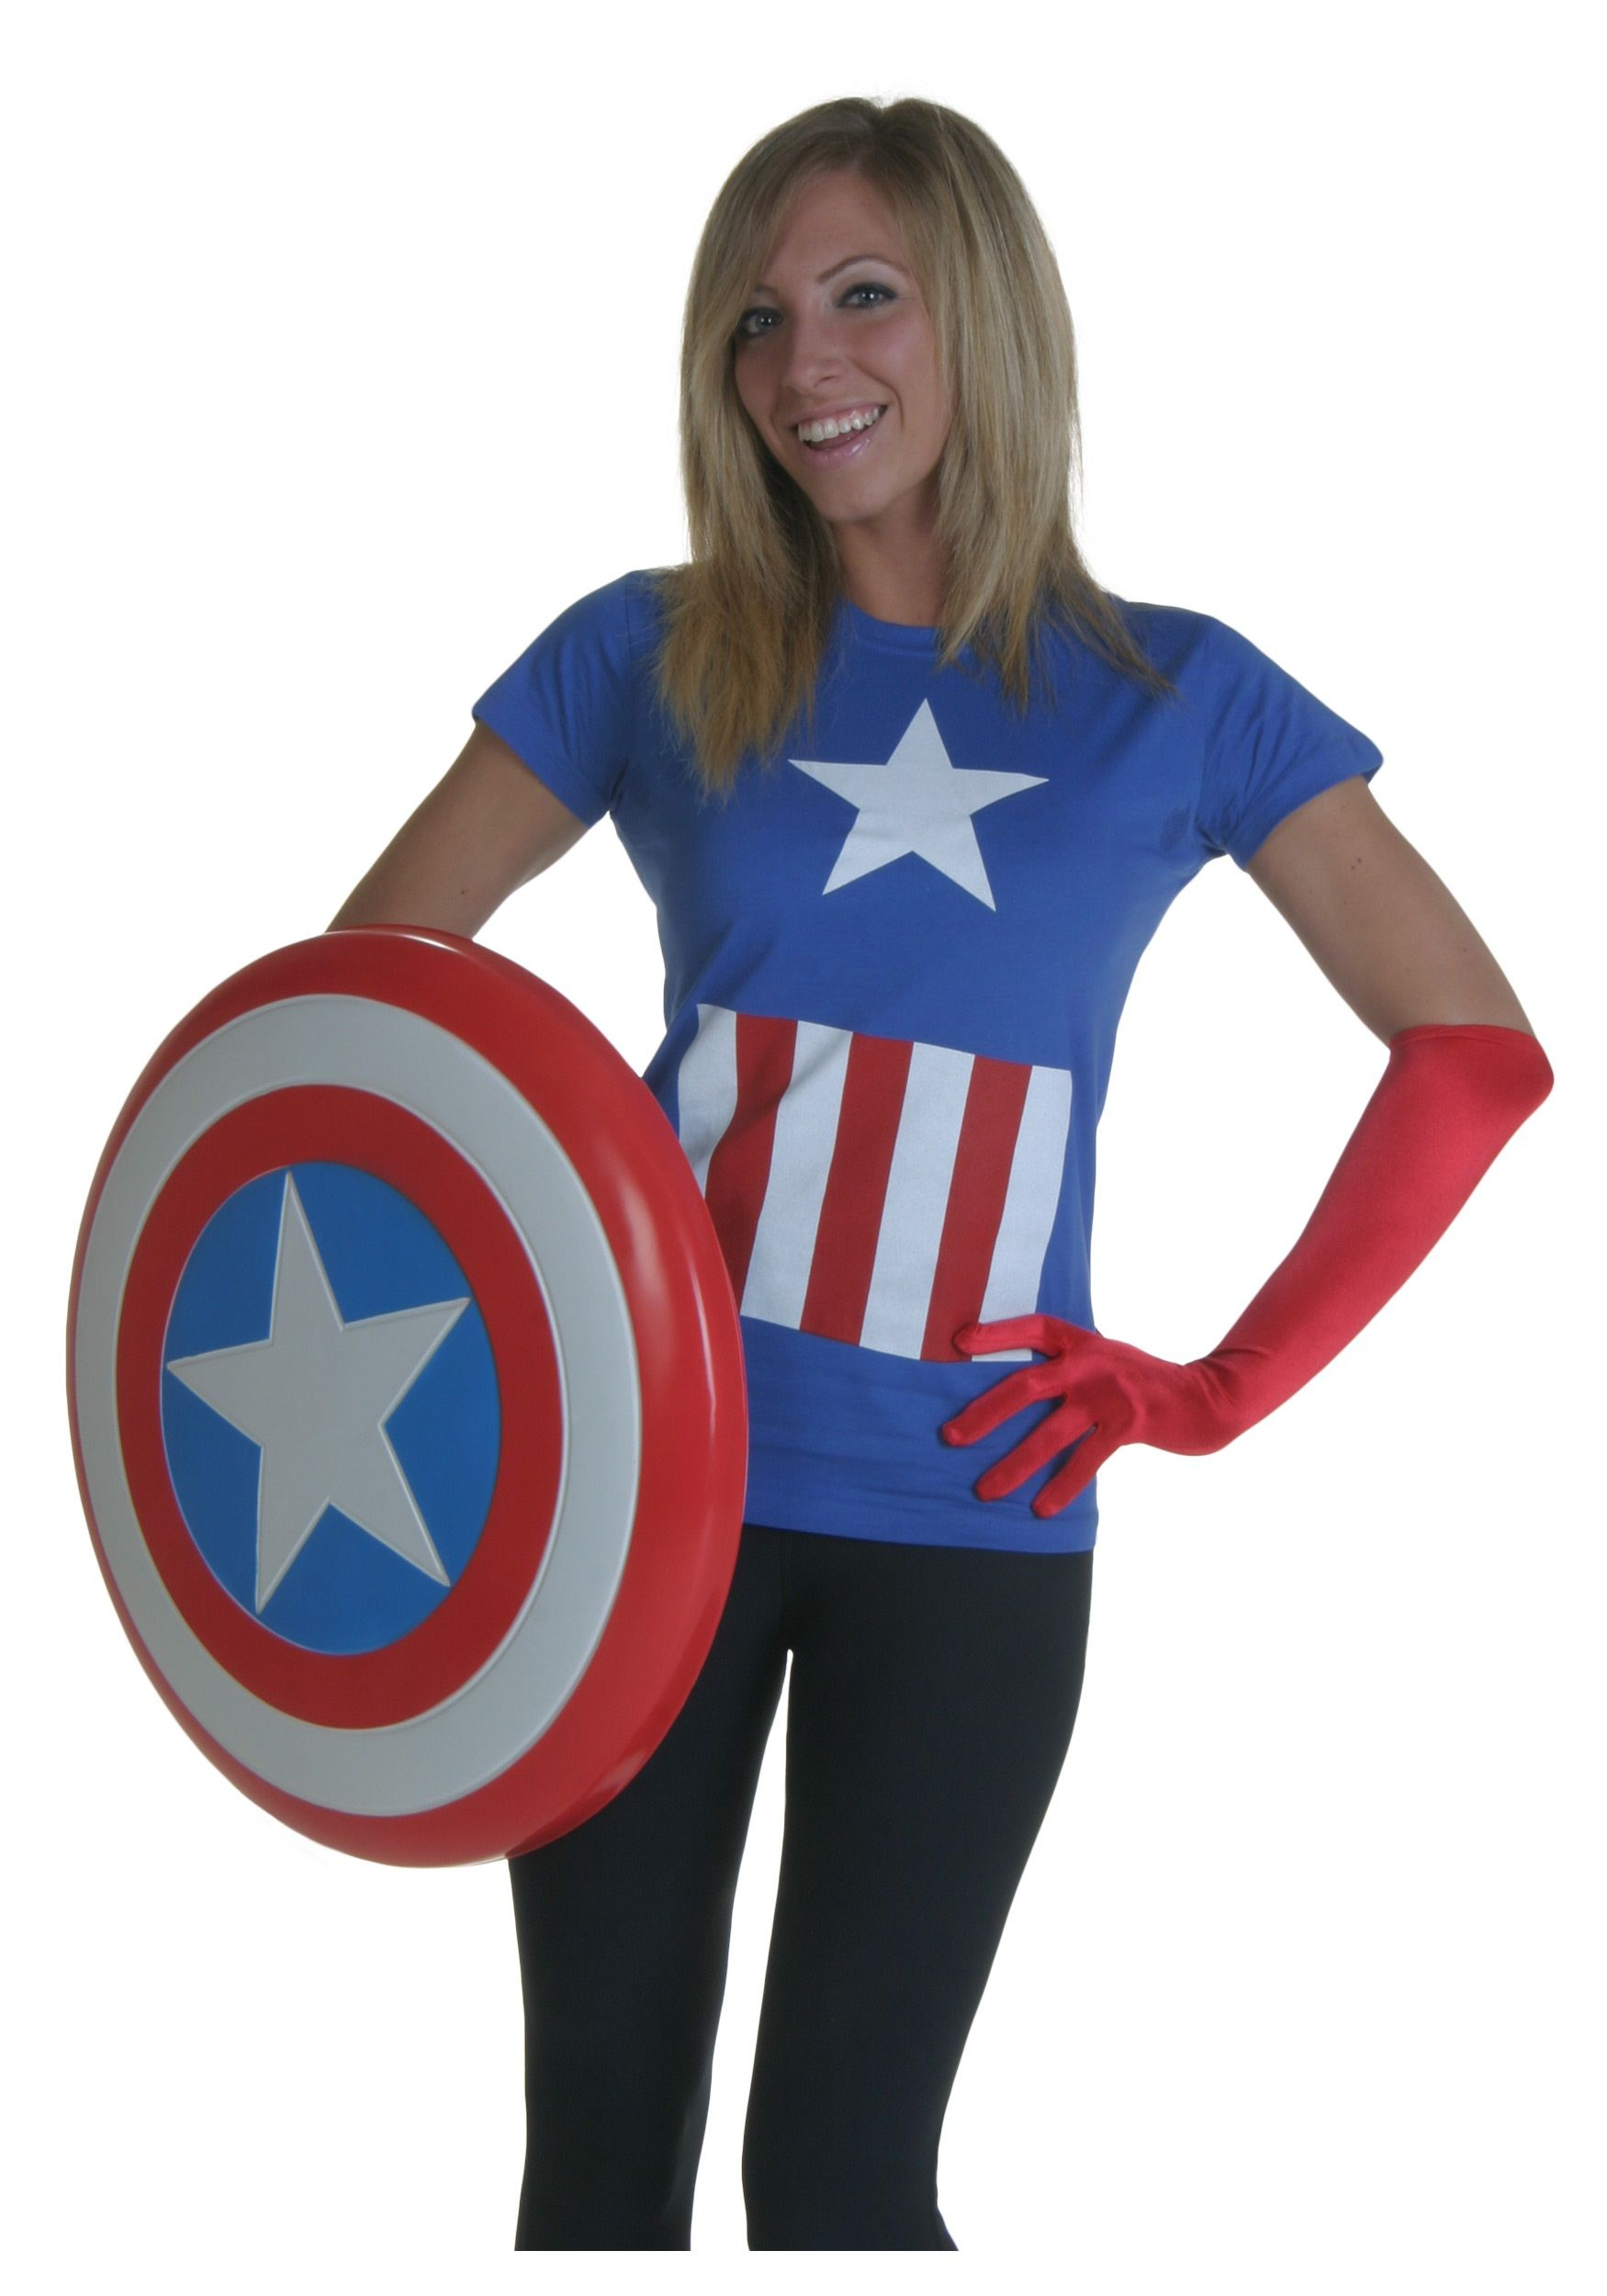 Pin On Halloween Costumes Captain marvel costume, cosplay costume #captainmarvel #cosplaycostume #costume. pinterest